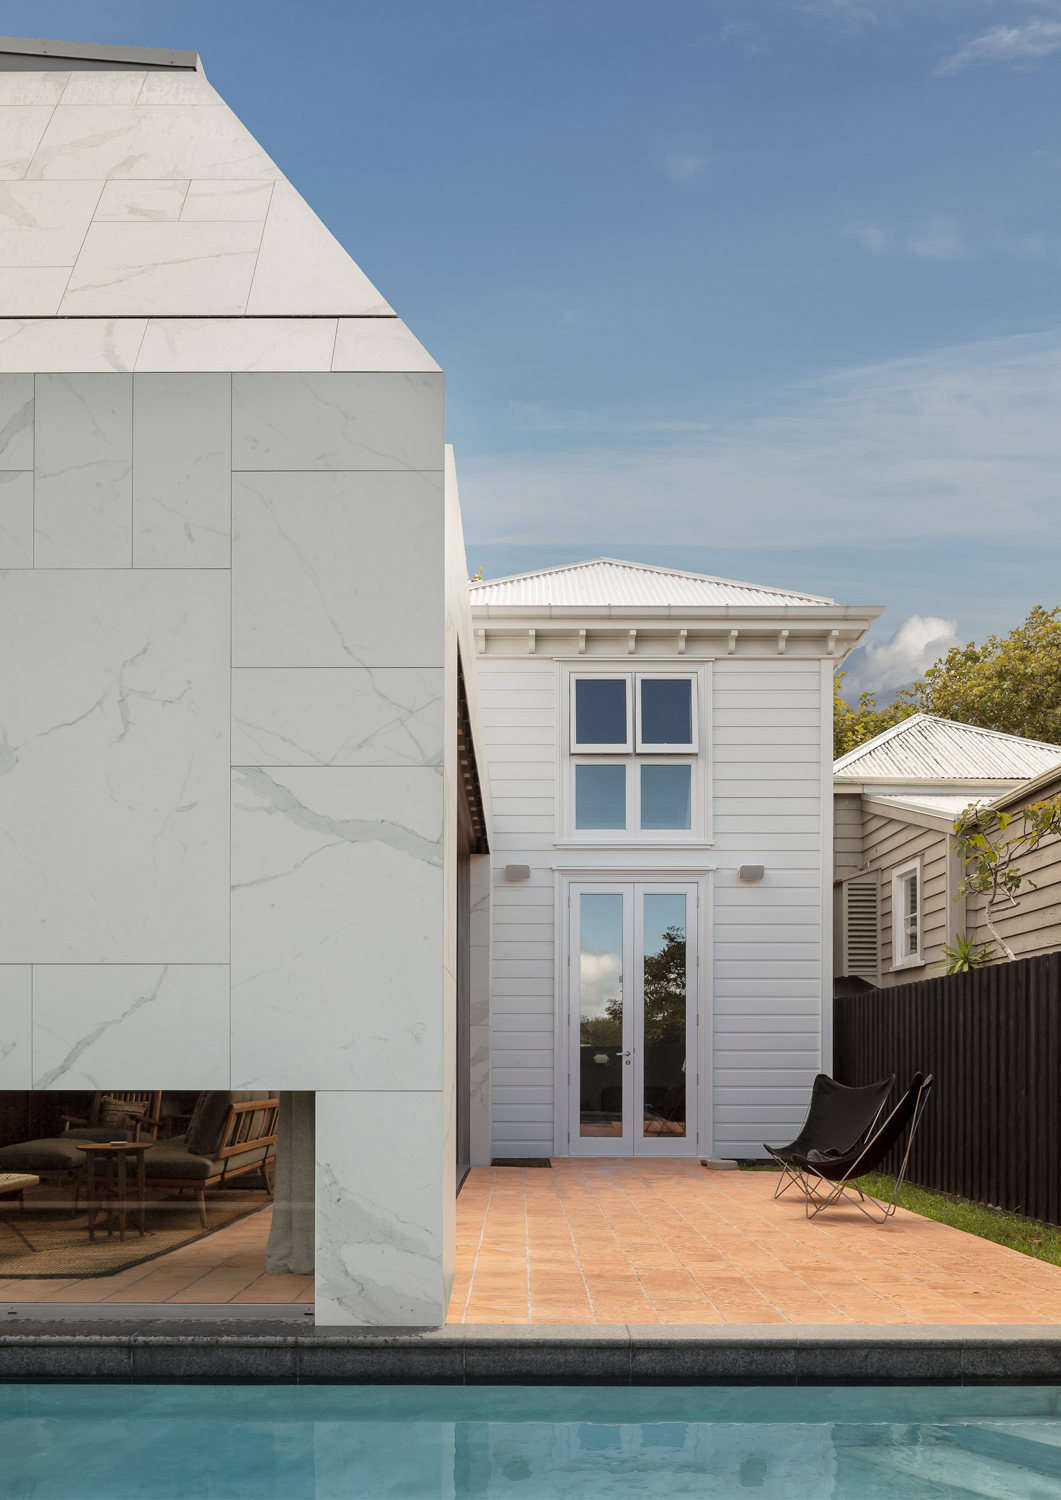 Collective Composition A Historic Villa Renovation in Auckland by Katie Lockhart and Jack McKinney Architects The exterior of the house shows where the original build, in white painted wood cladding, meets the new extension, finished in broad white marble tiles. The pool is a new addition and surrounding exterior landscape, both in front and back, is by landscape designer Jared Lockhart.